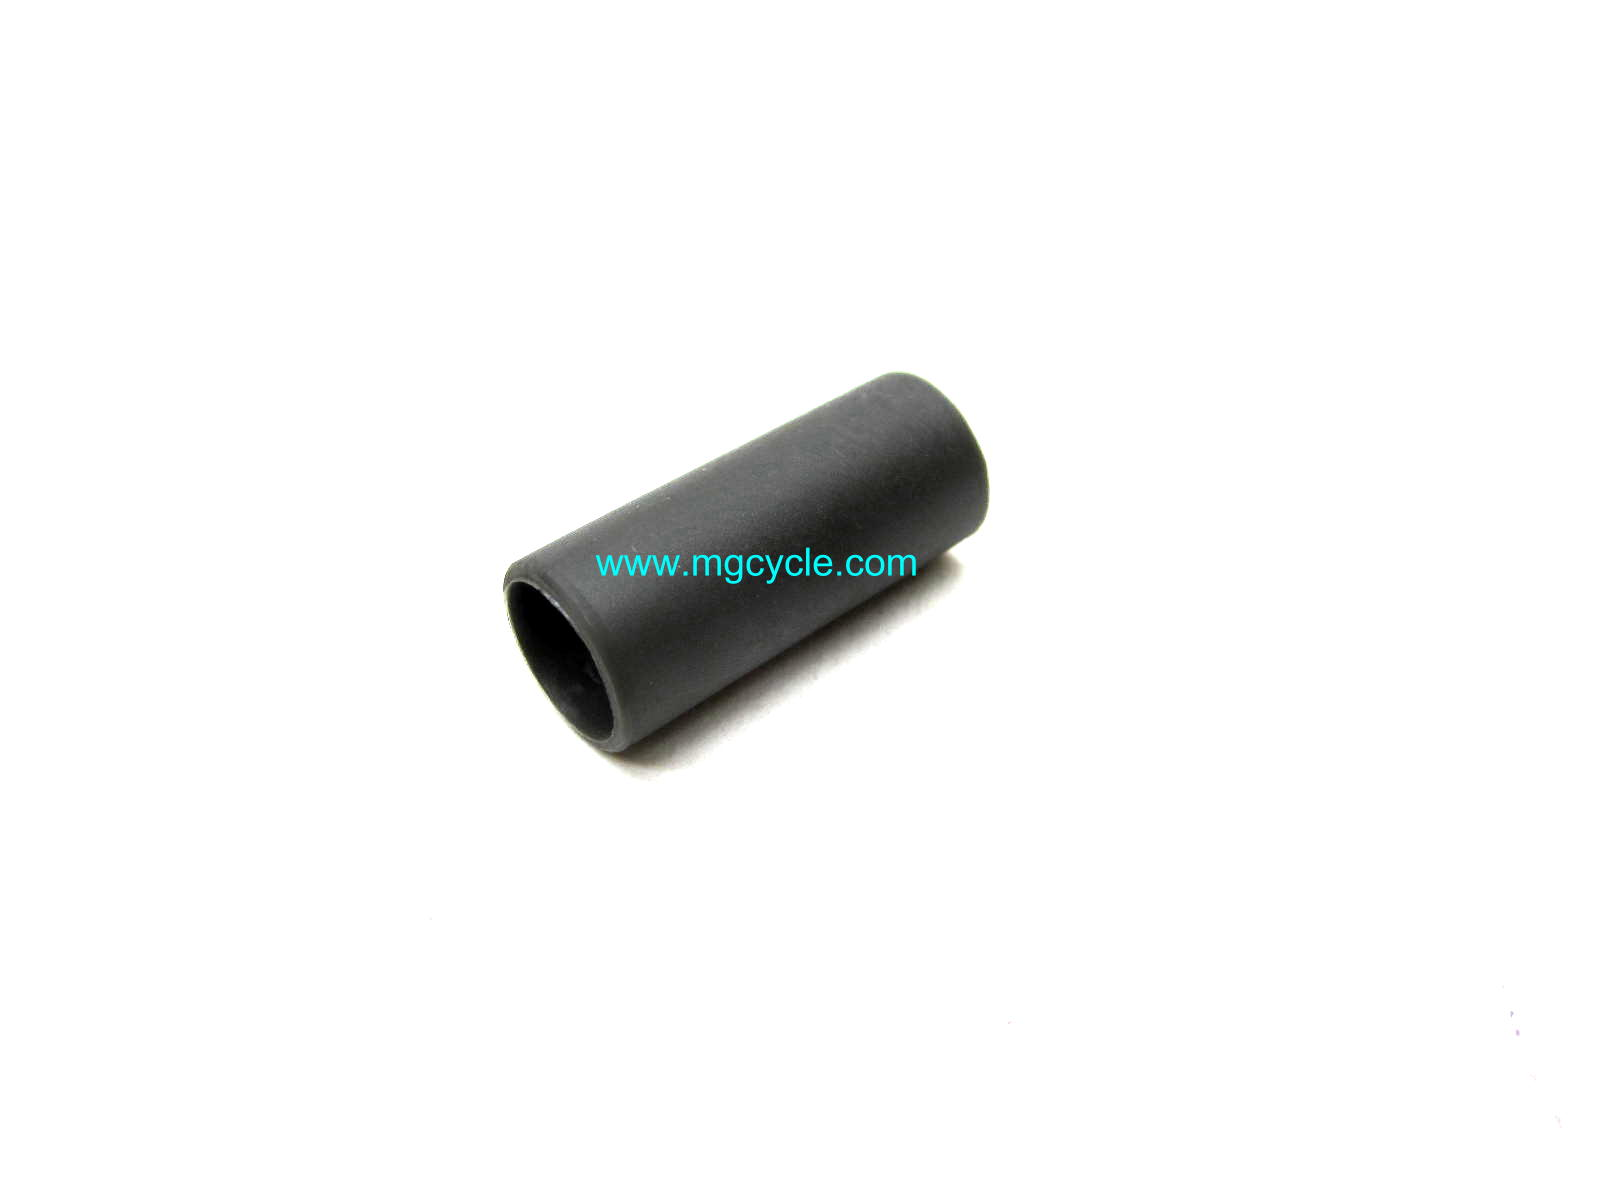 plastic bush, long narrow shift and brake lever bushing